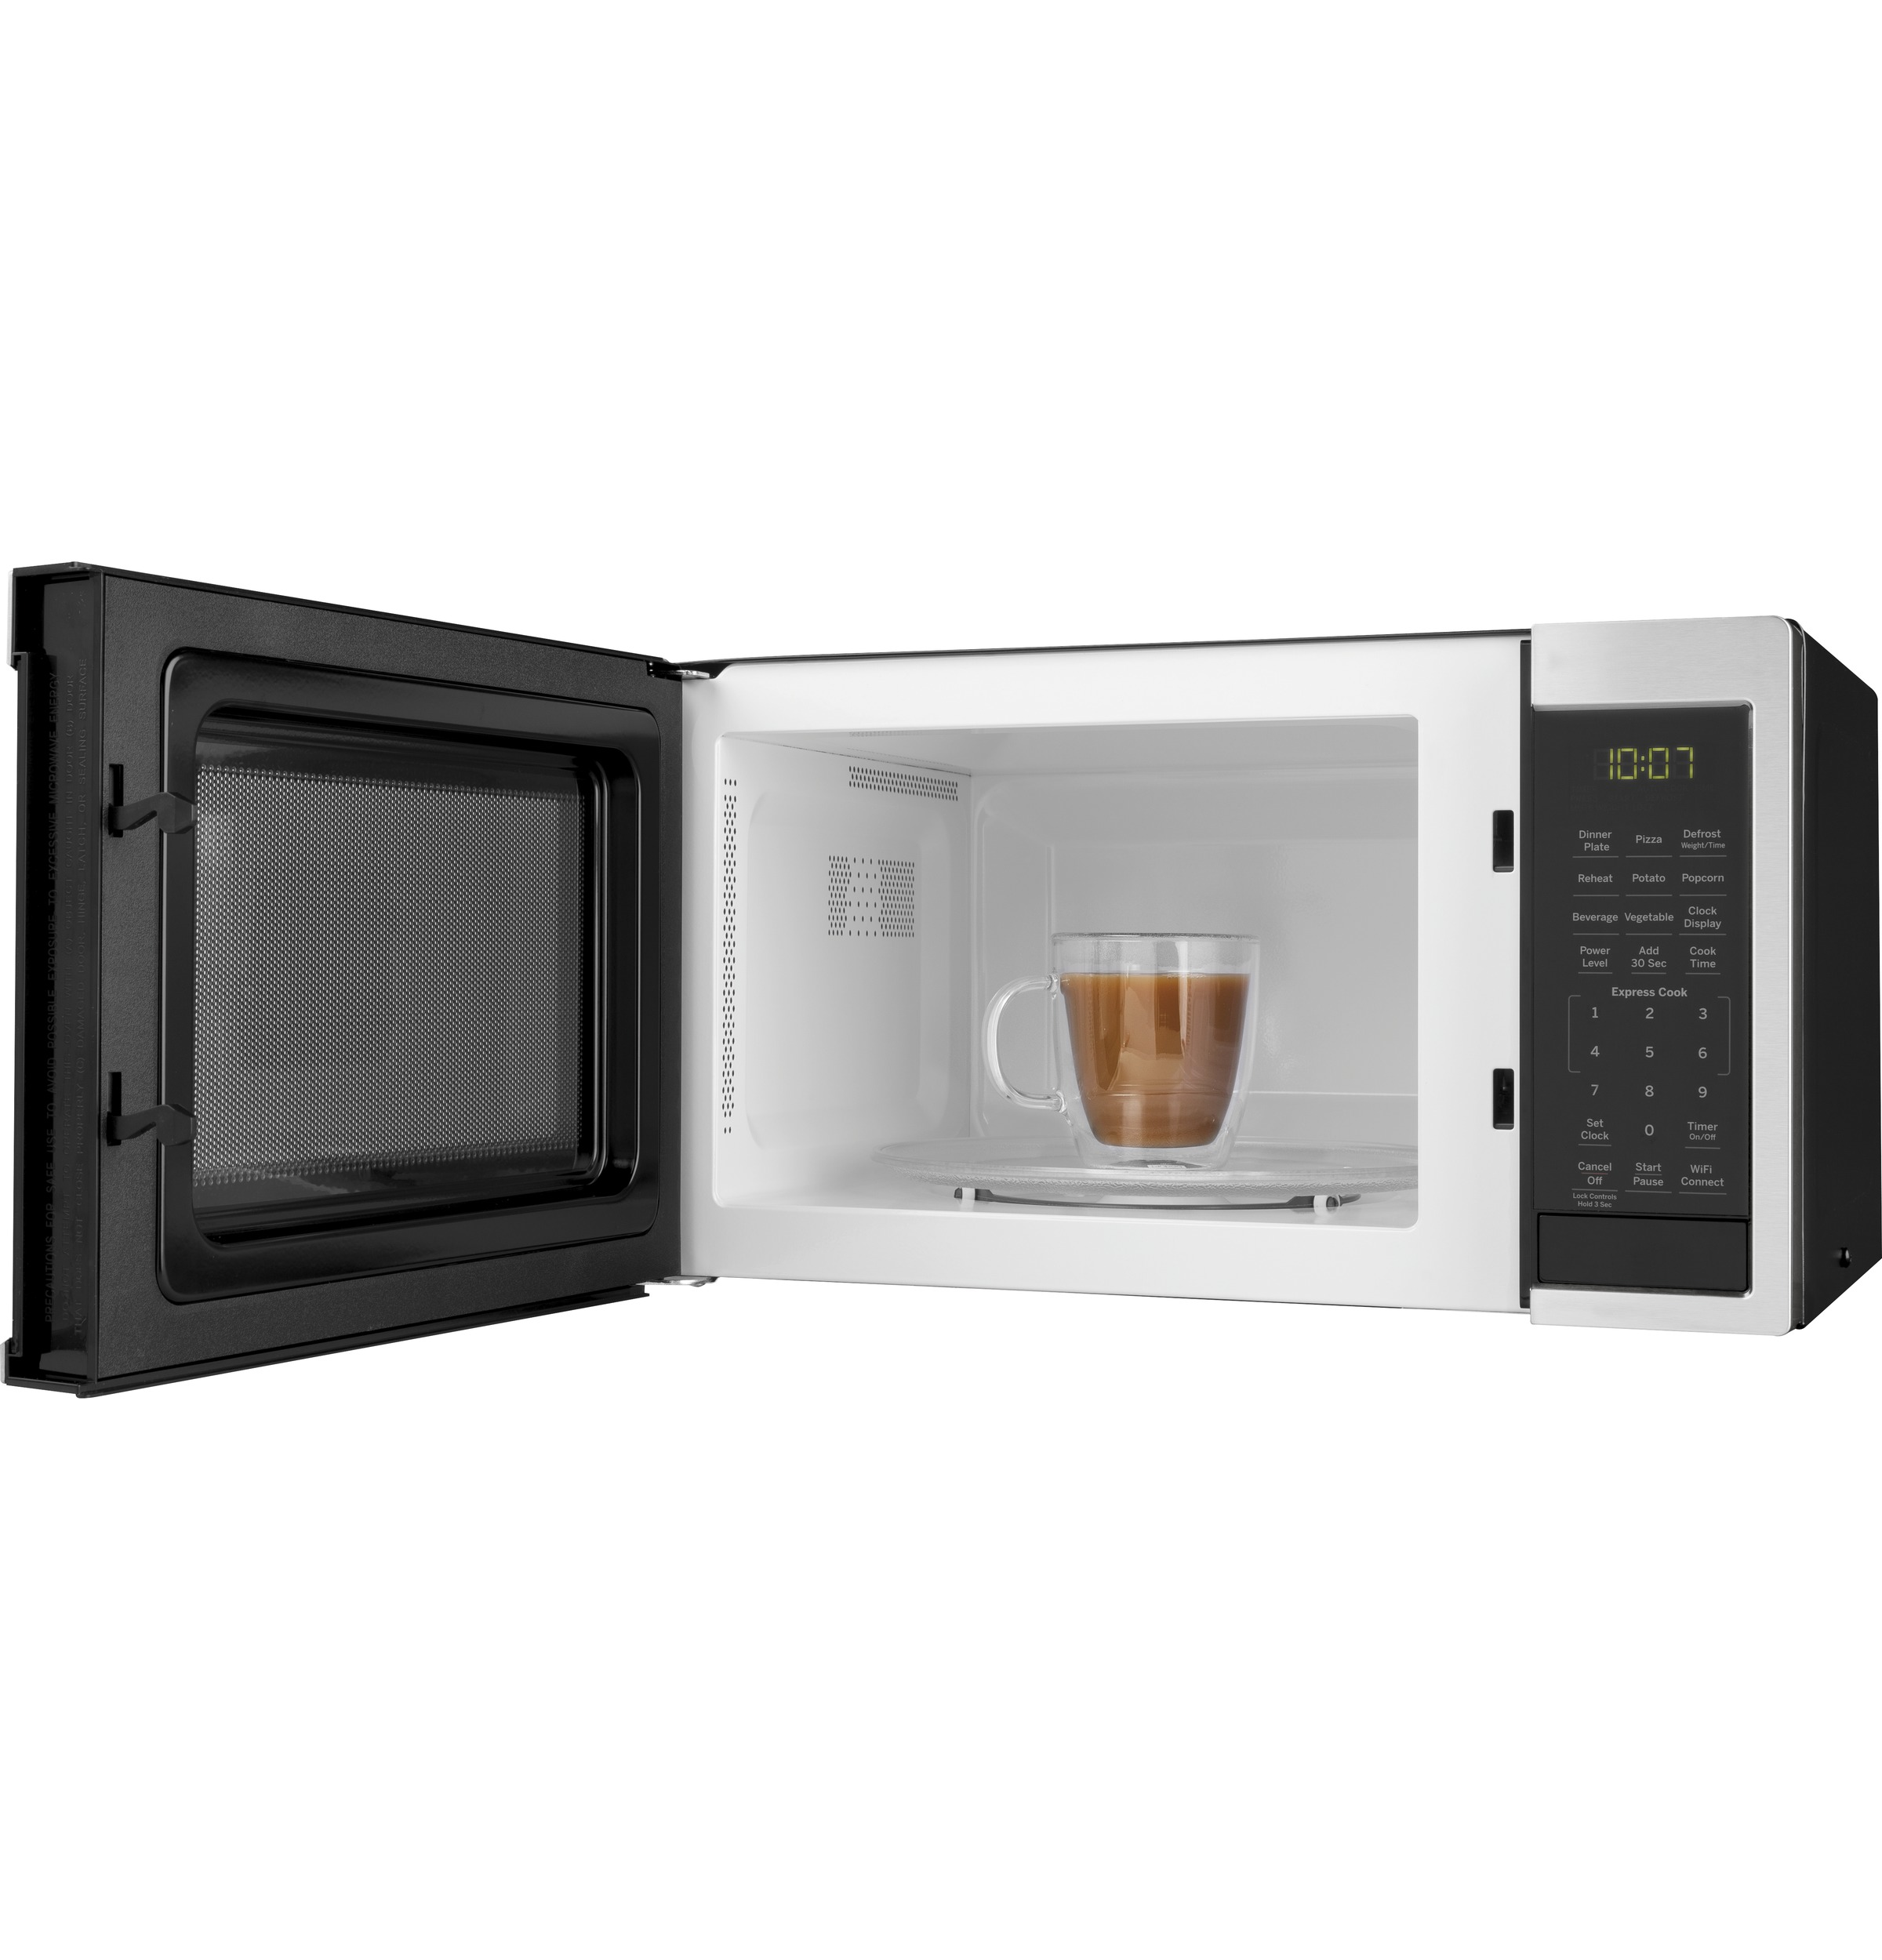 Model: JES1097SMSS | GE GE® 0.9 Cu. Ft. Capacity Smart Countertop Microwave Oven with Scan-To-Cook Technology